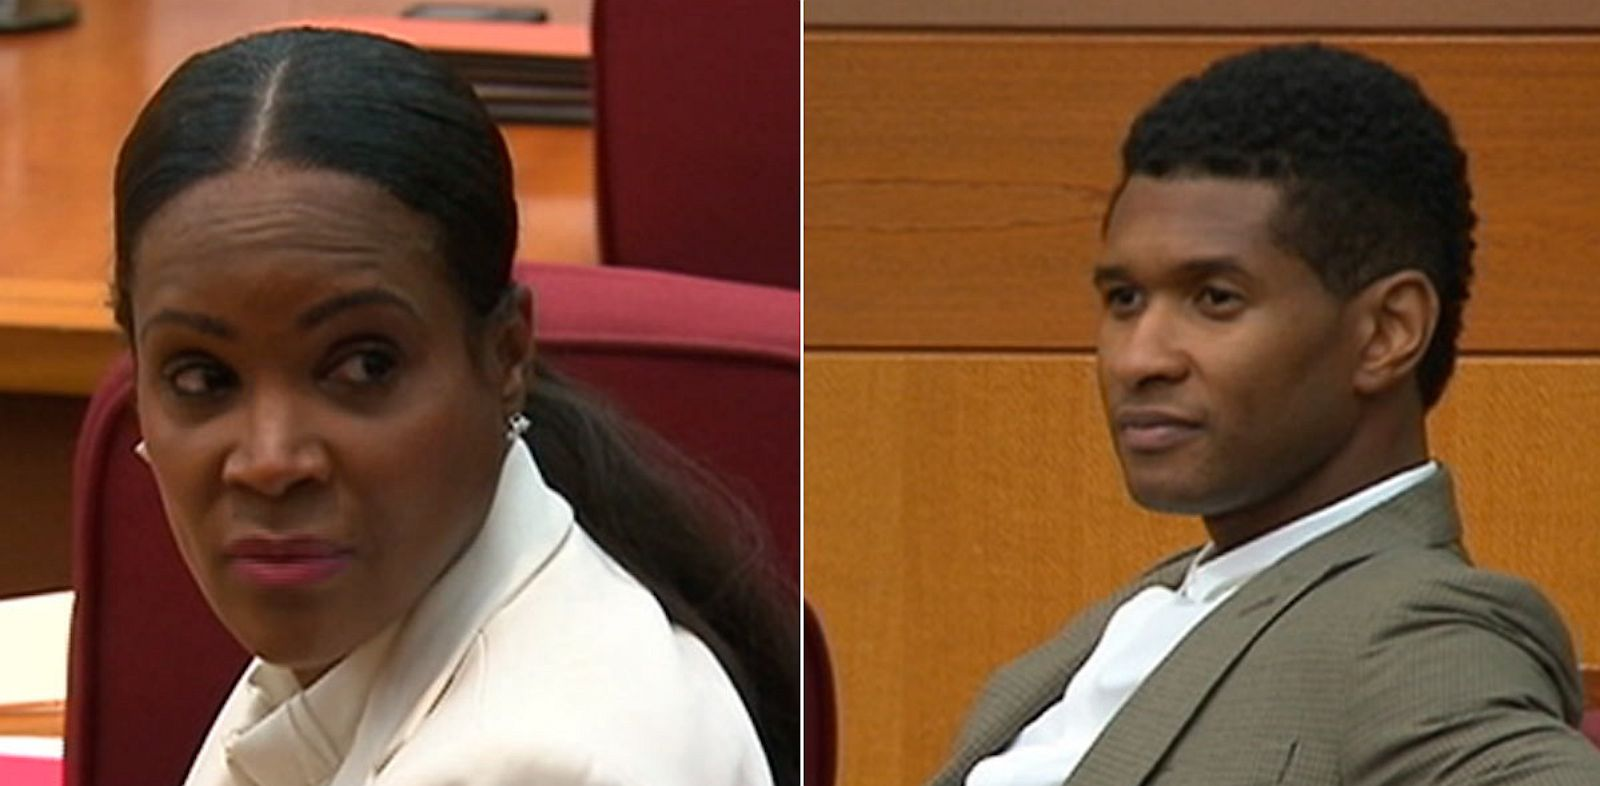 PHOTO: Usher Raymond and Tameka Foster were in court on Aug. 9, 2013 in Atlanta, Ga. for a custody hearing.